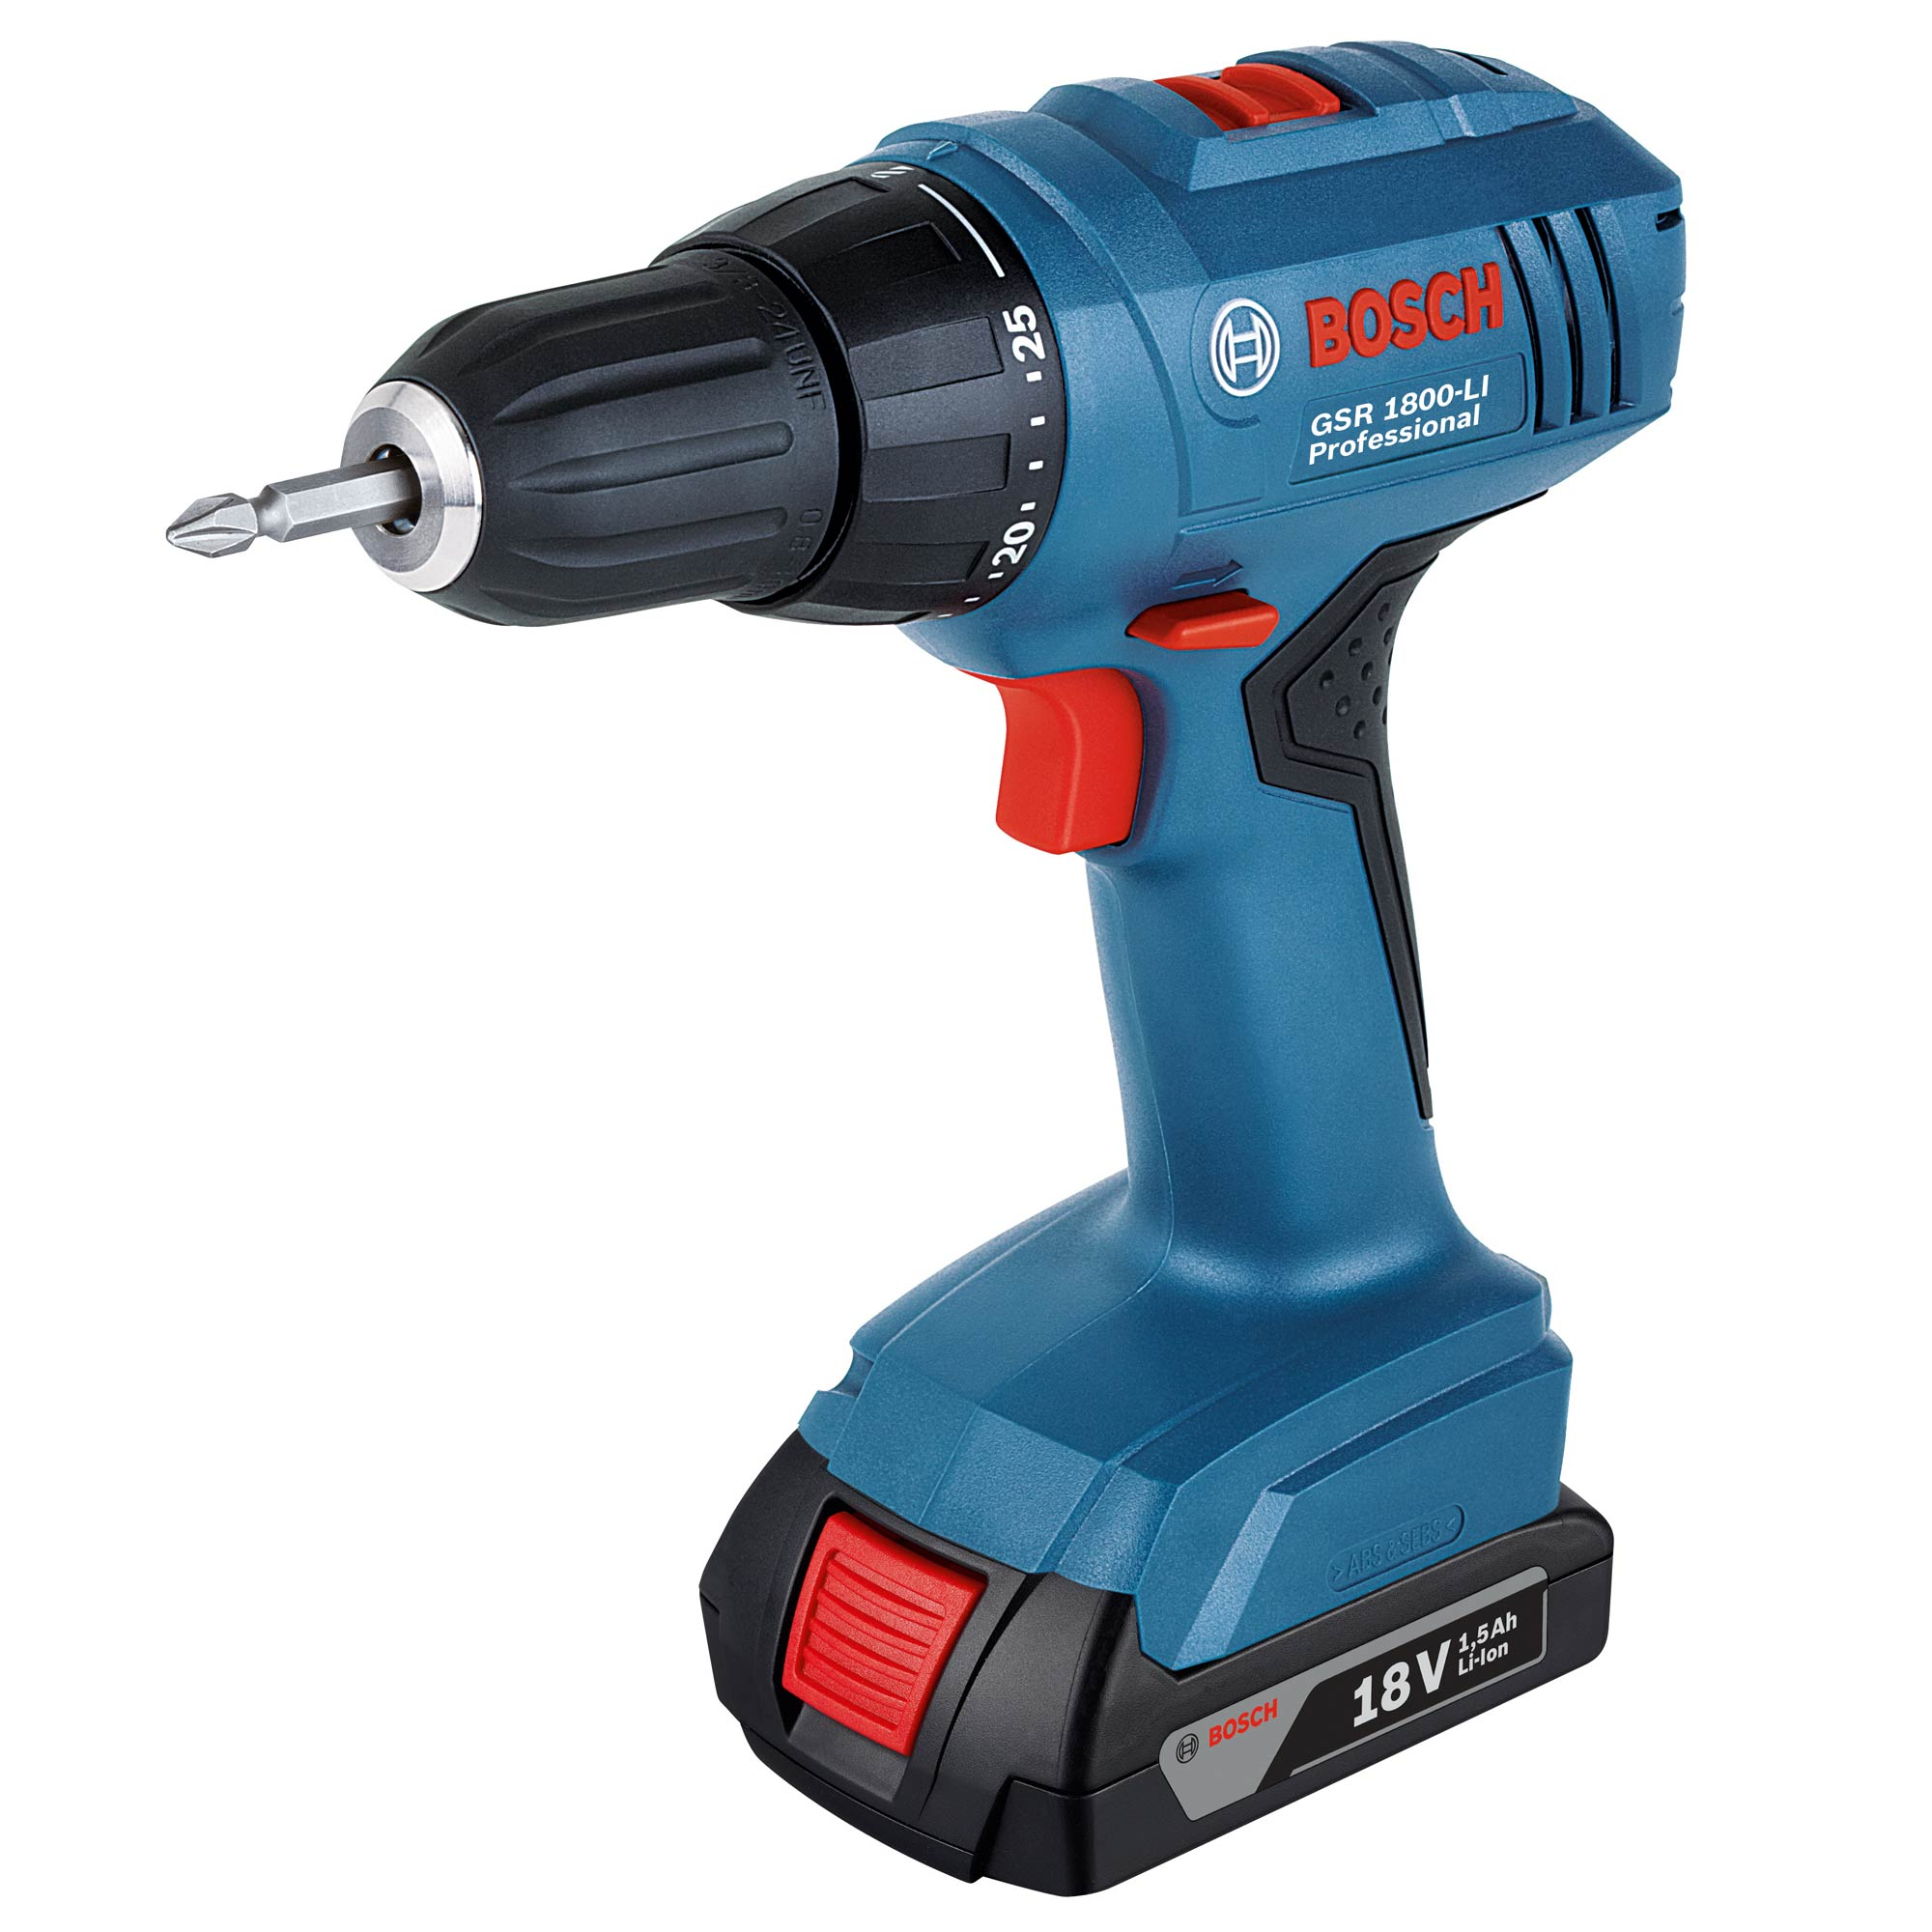 bosch gsr 1800 li bosch 18v li ion professional drill driver. Black Bedroom Furniture Sets. Home Design Ideas